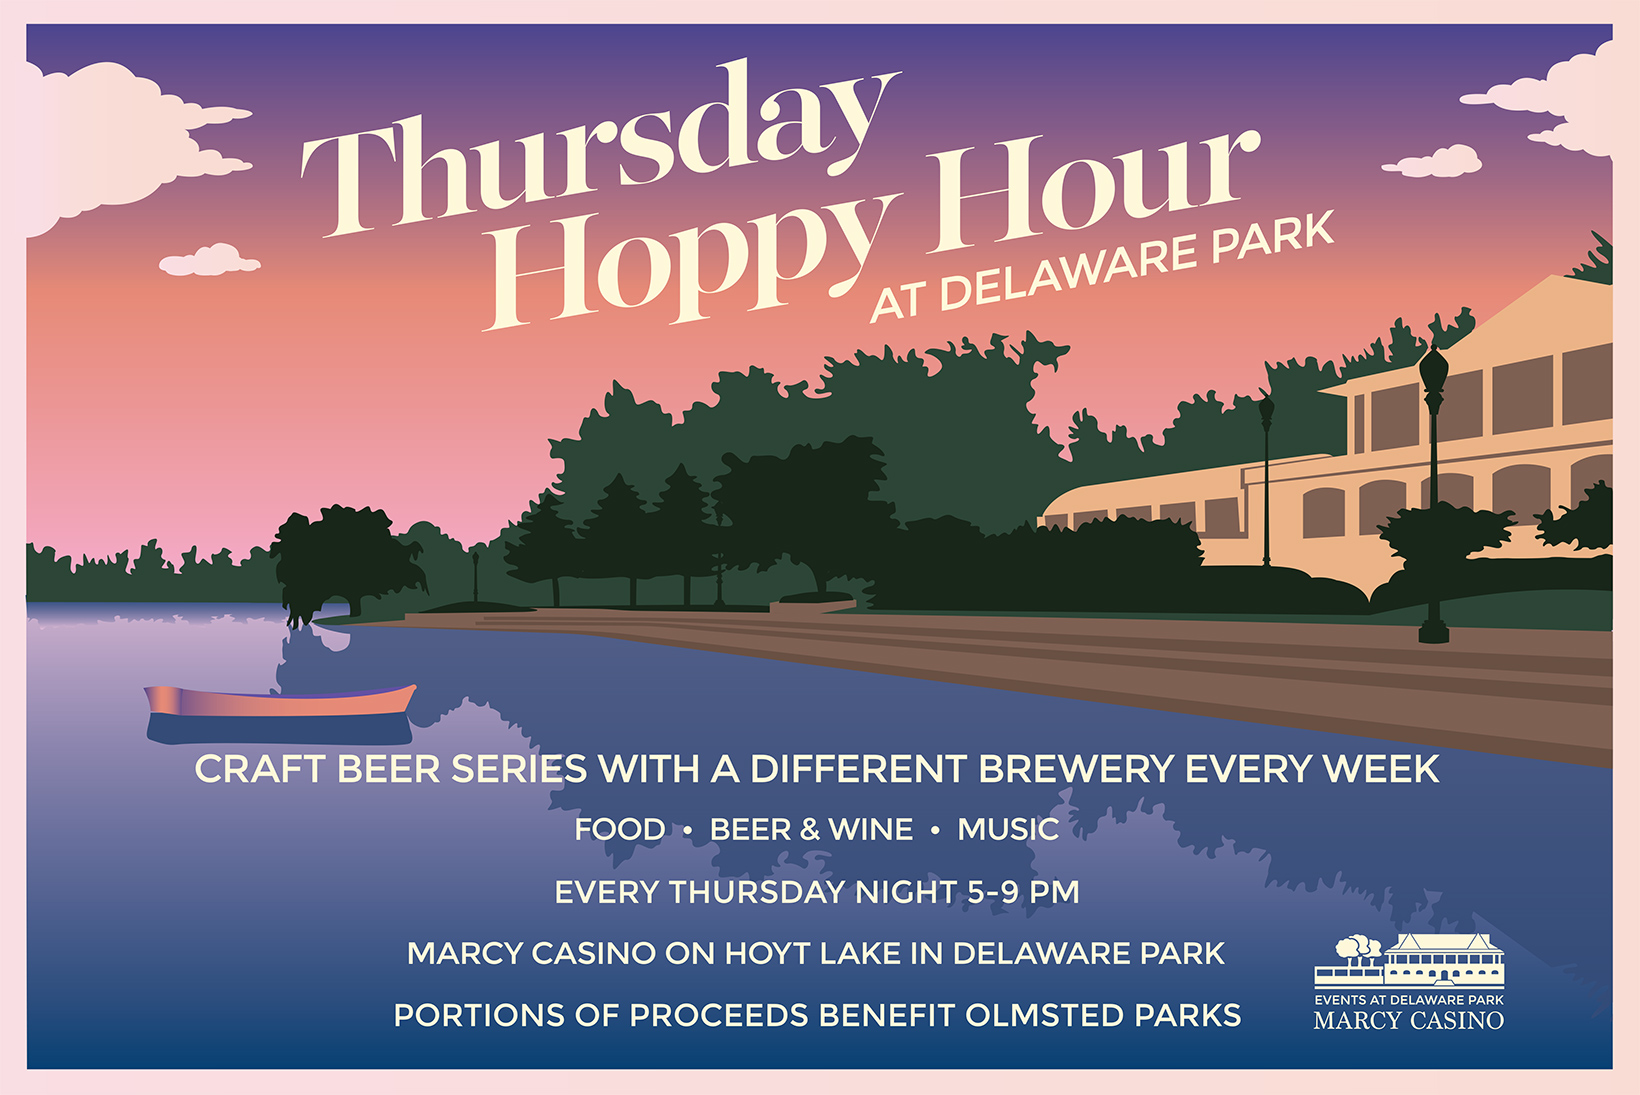 The Hoppy Hour event signage was updated for its second year, transitioning to a palette of dusky purples